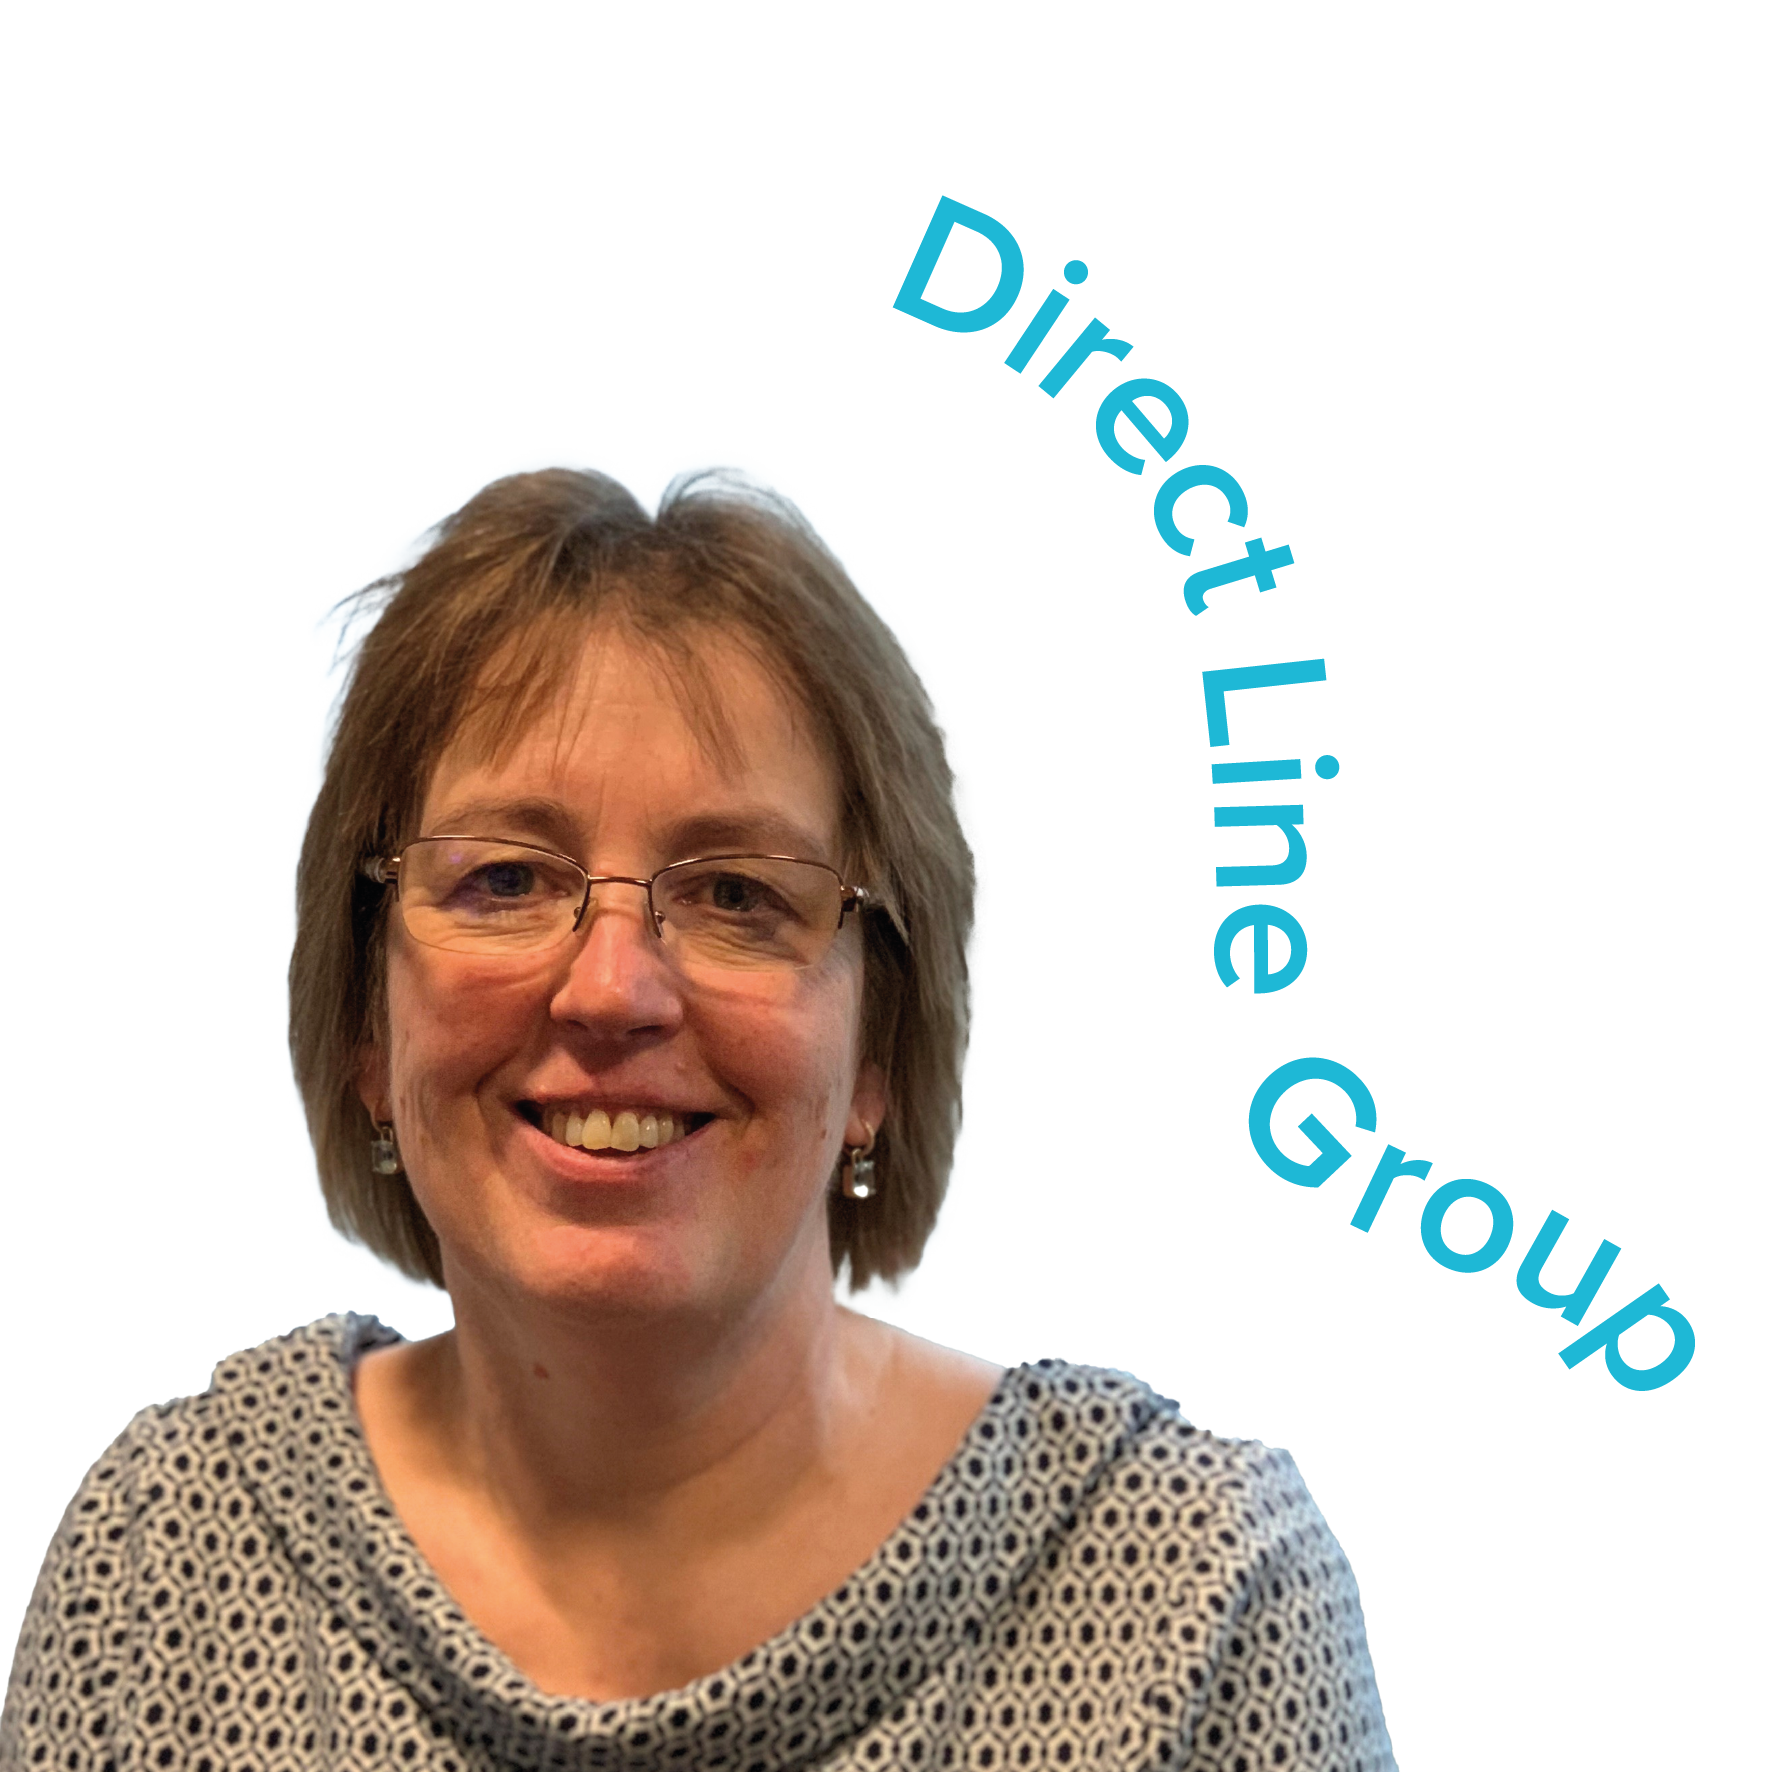 Sarah Greasley, Chief Technology Officer, Direct Line Group